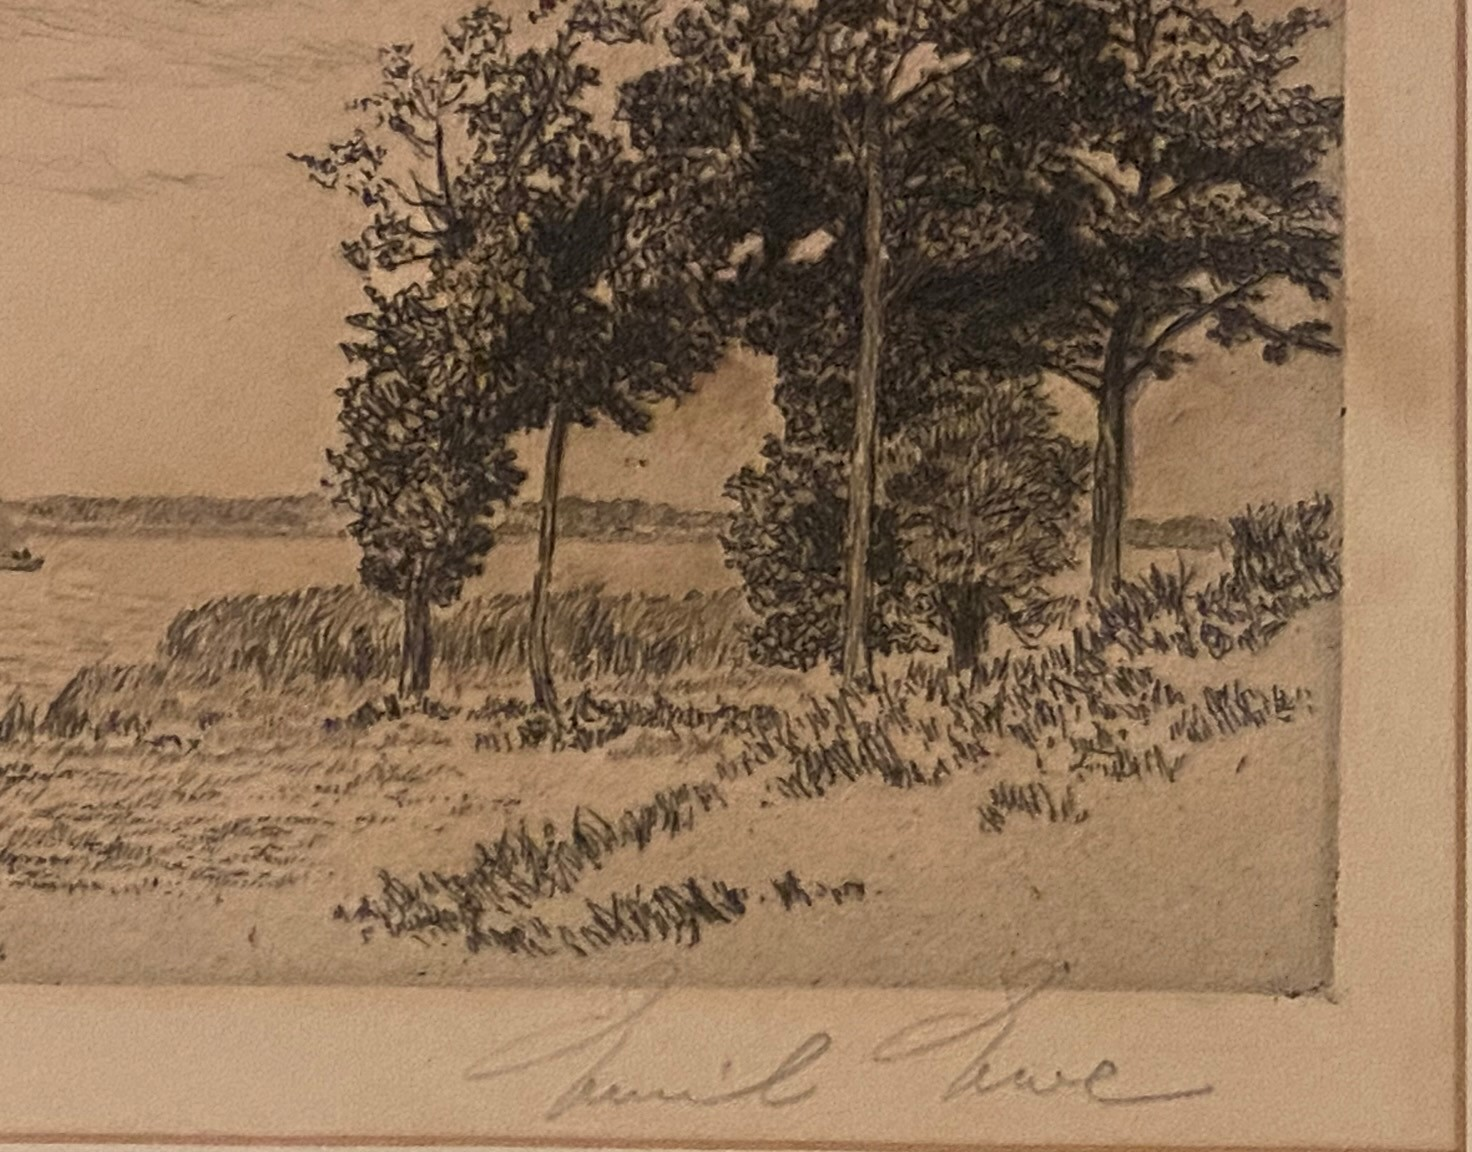 Etching Scottish Highland loch scene indistinctly signed in pencil - Image 3 of 3